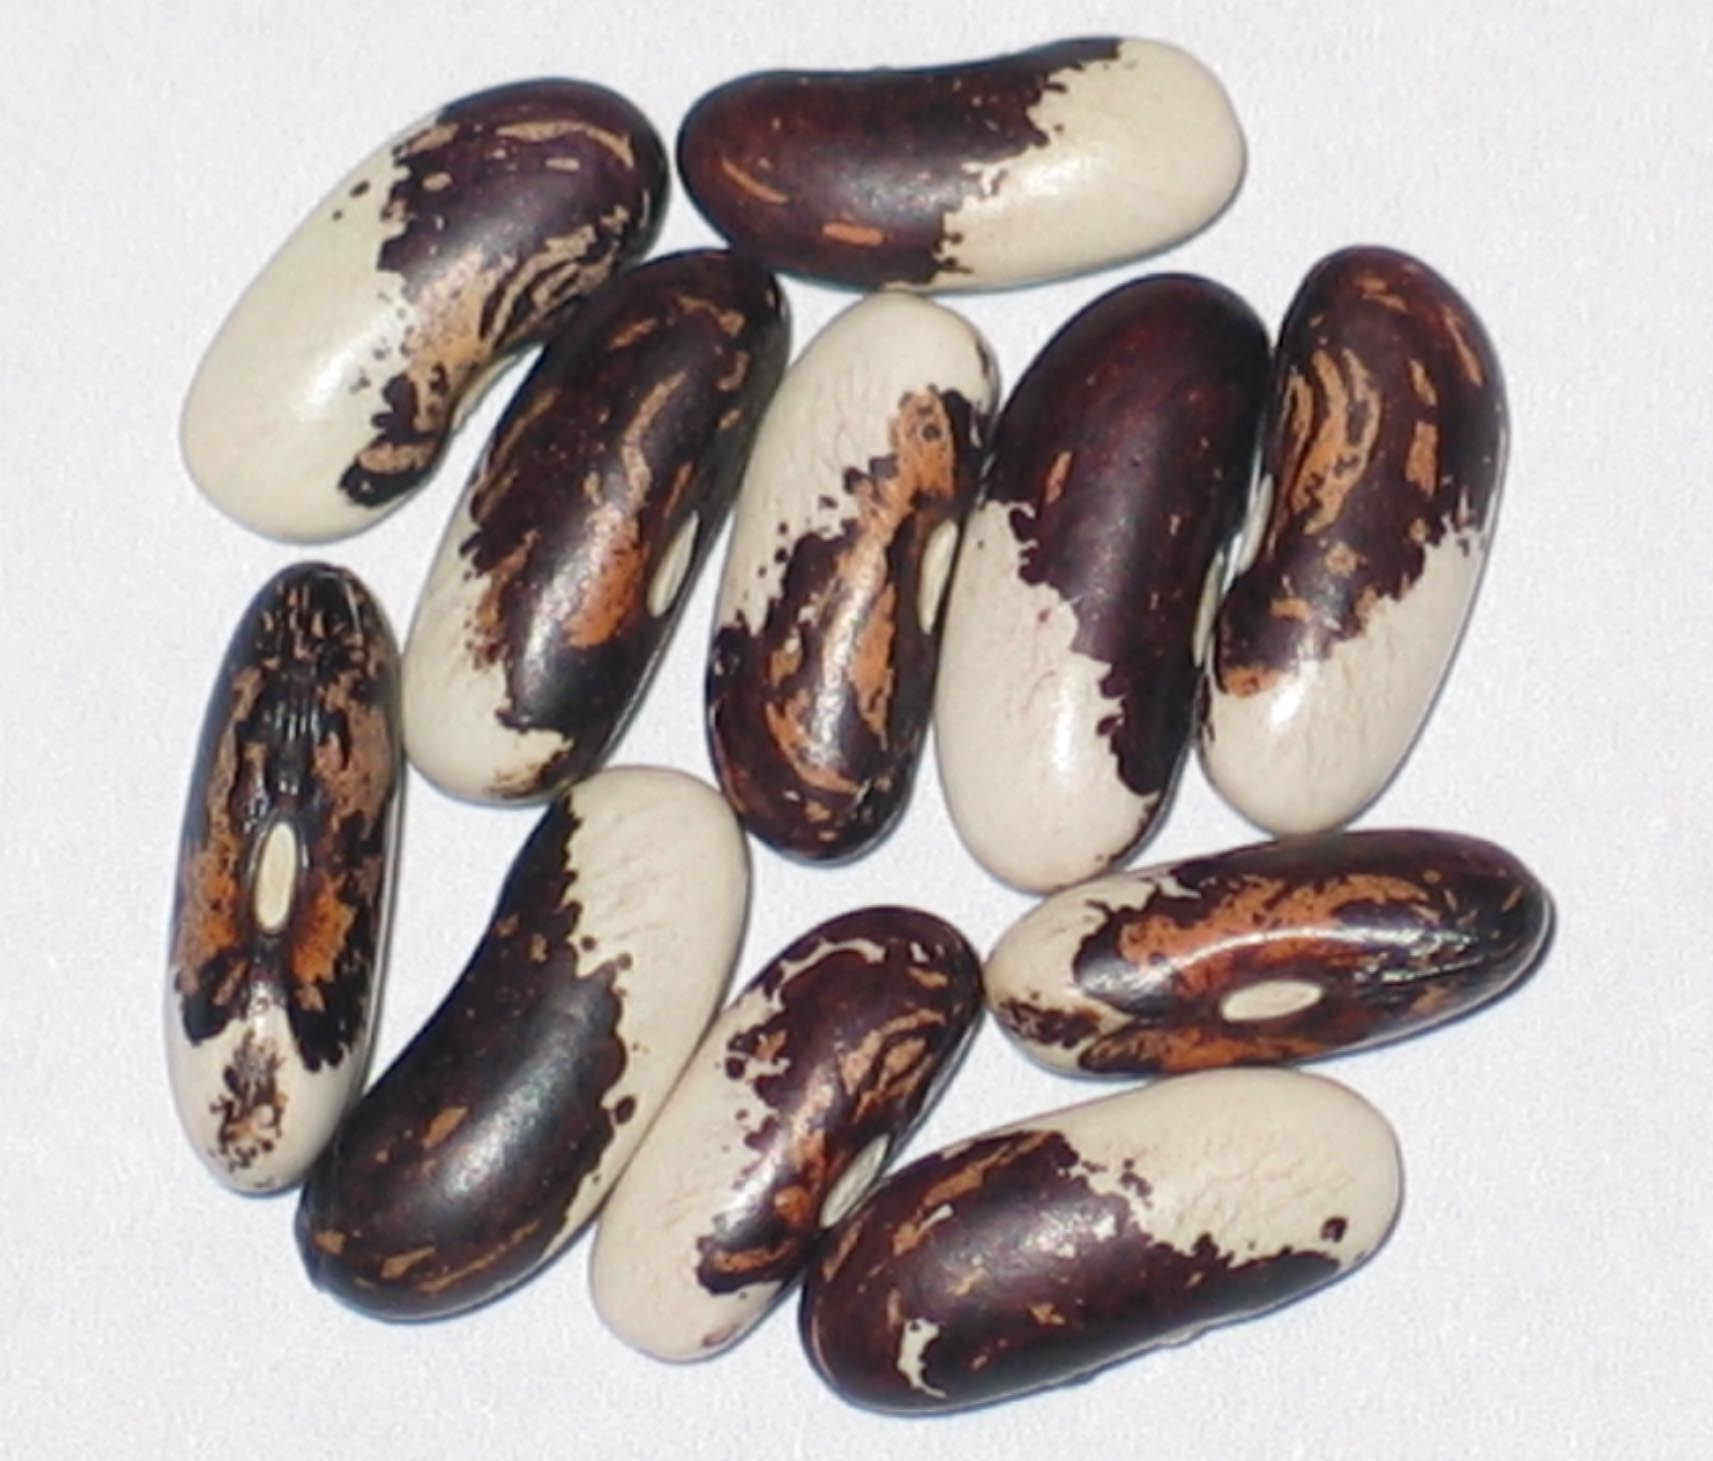 image of Vermont Appaloosa beans